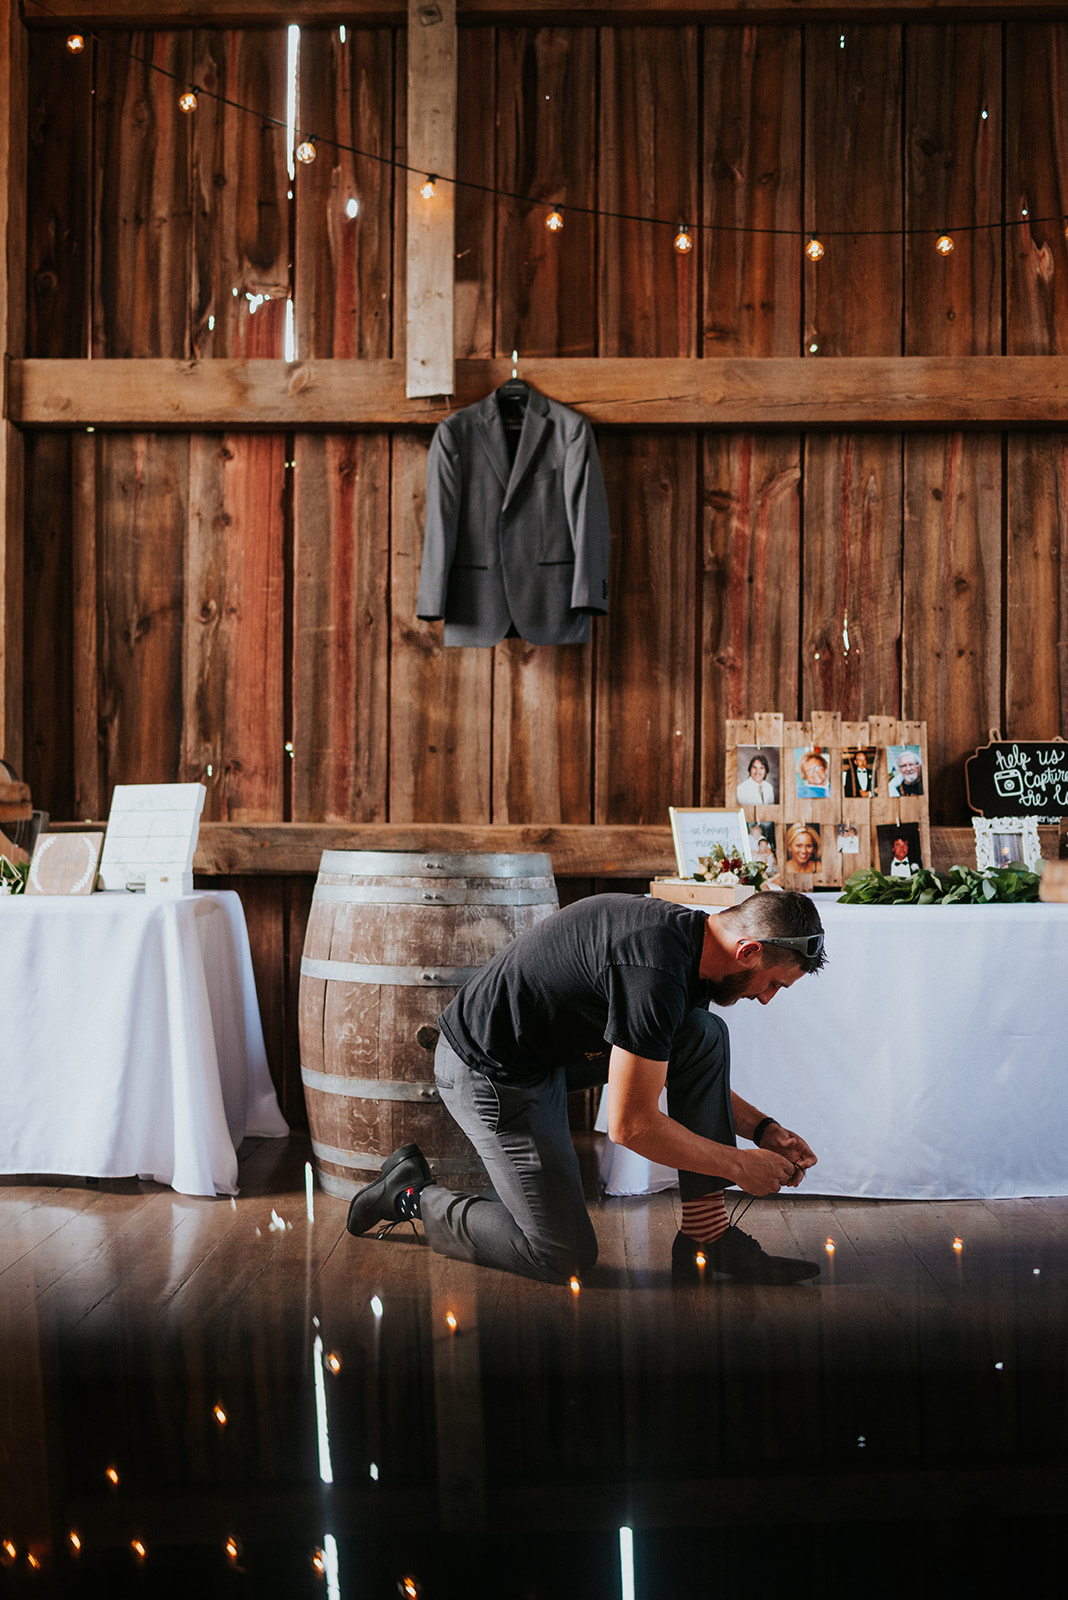 overthevineswisconsinwedding_0221.jpg